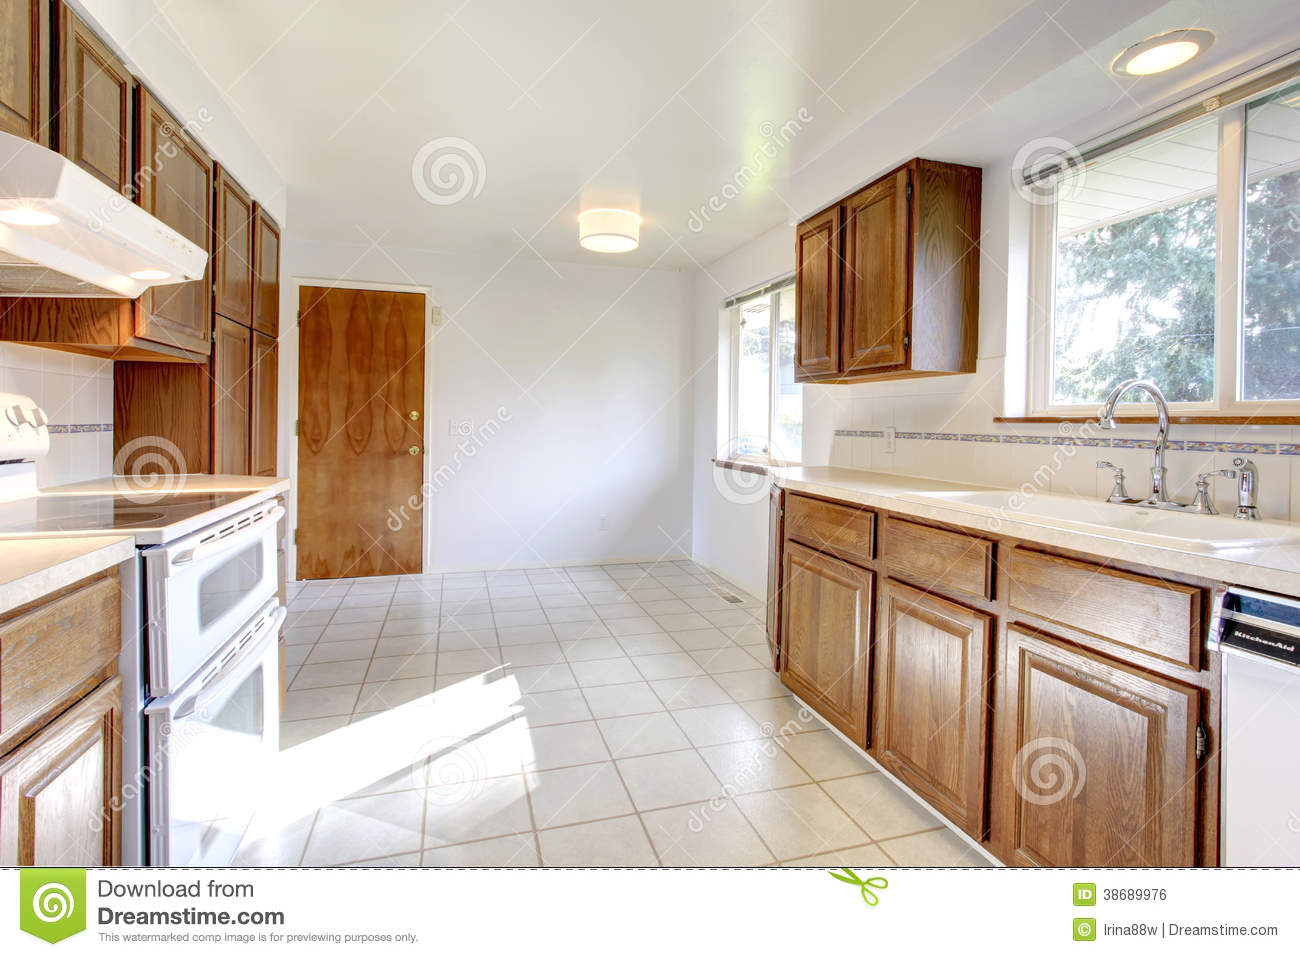 White kitchen room with brown cabinets stock photo image for White kitchen cabinets with tile floor